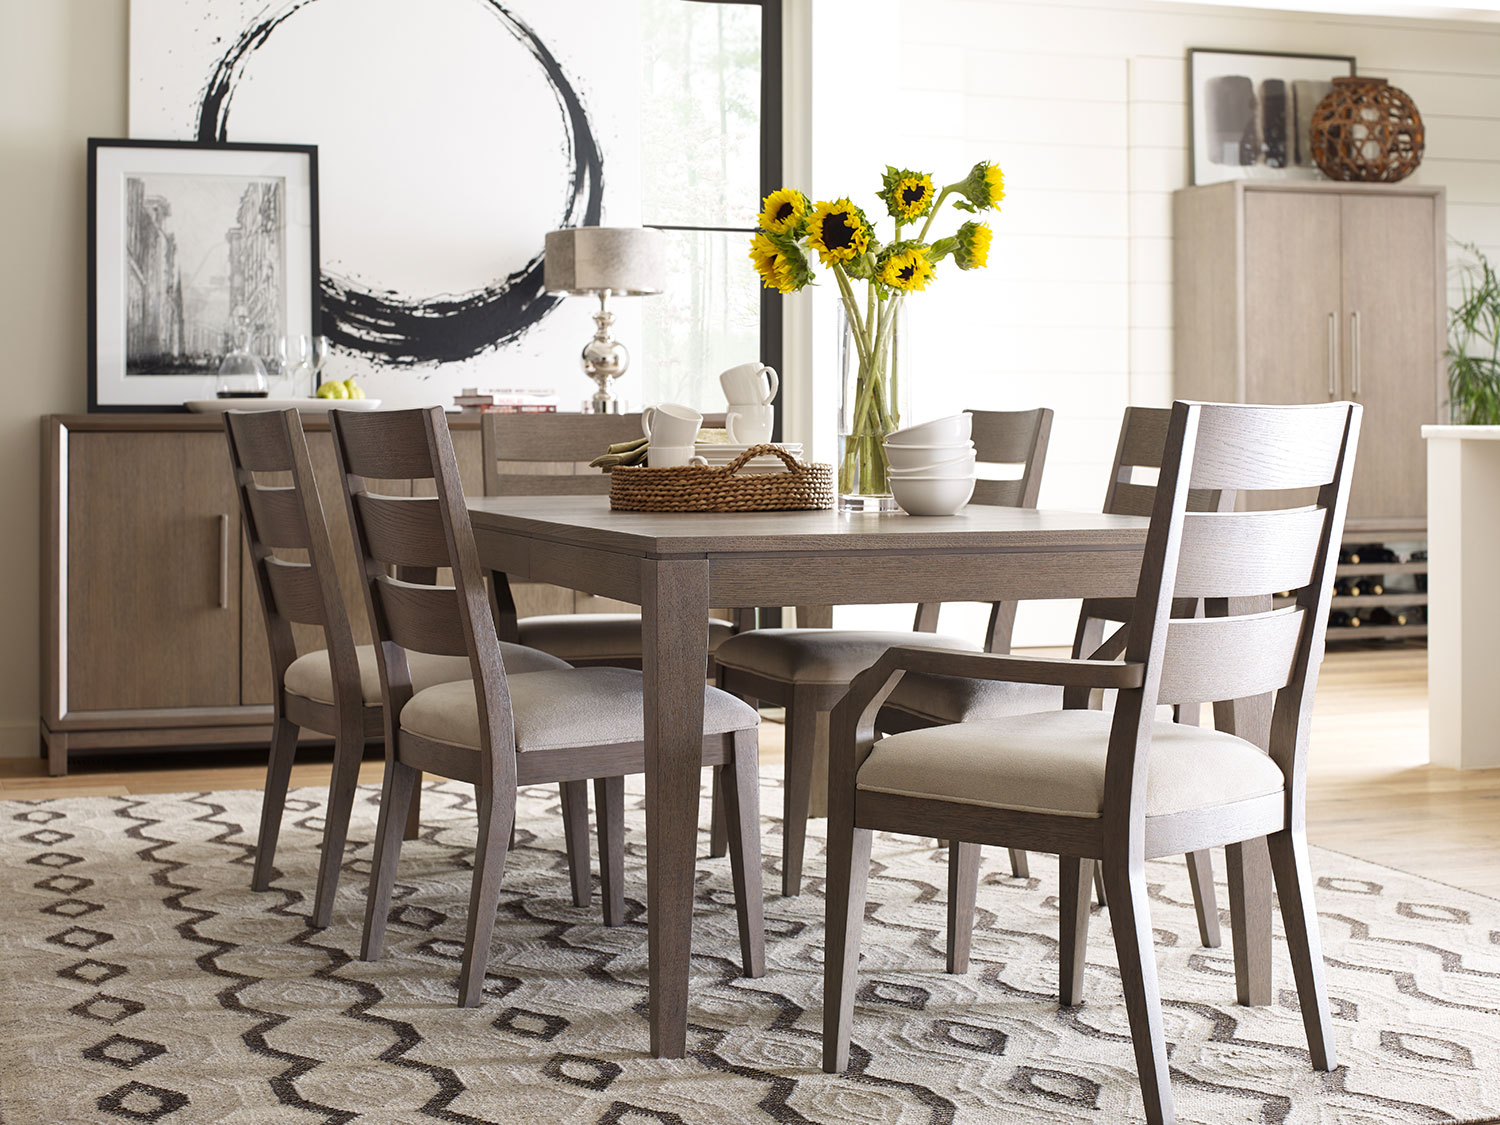 Dining room collections dining sets canada leon 39 s for Leon s dining room tables